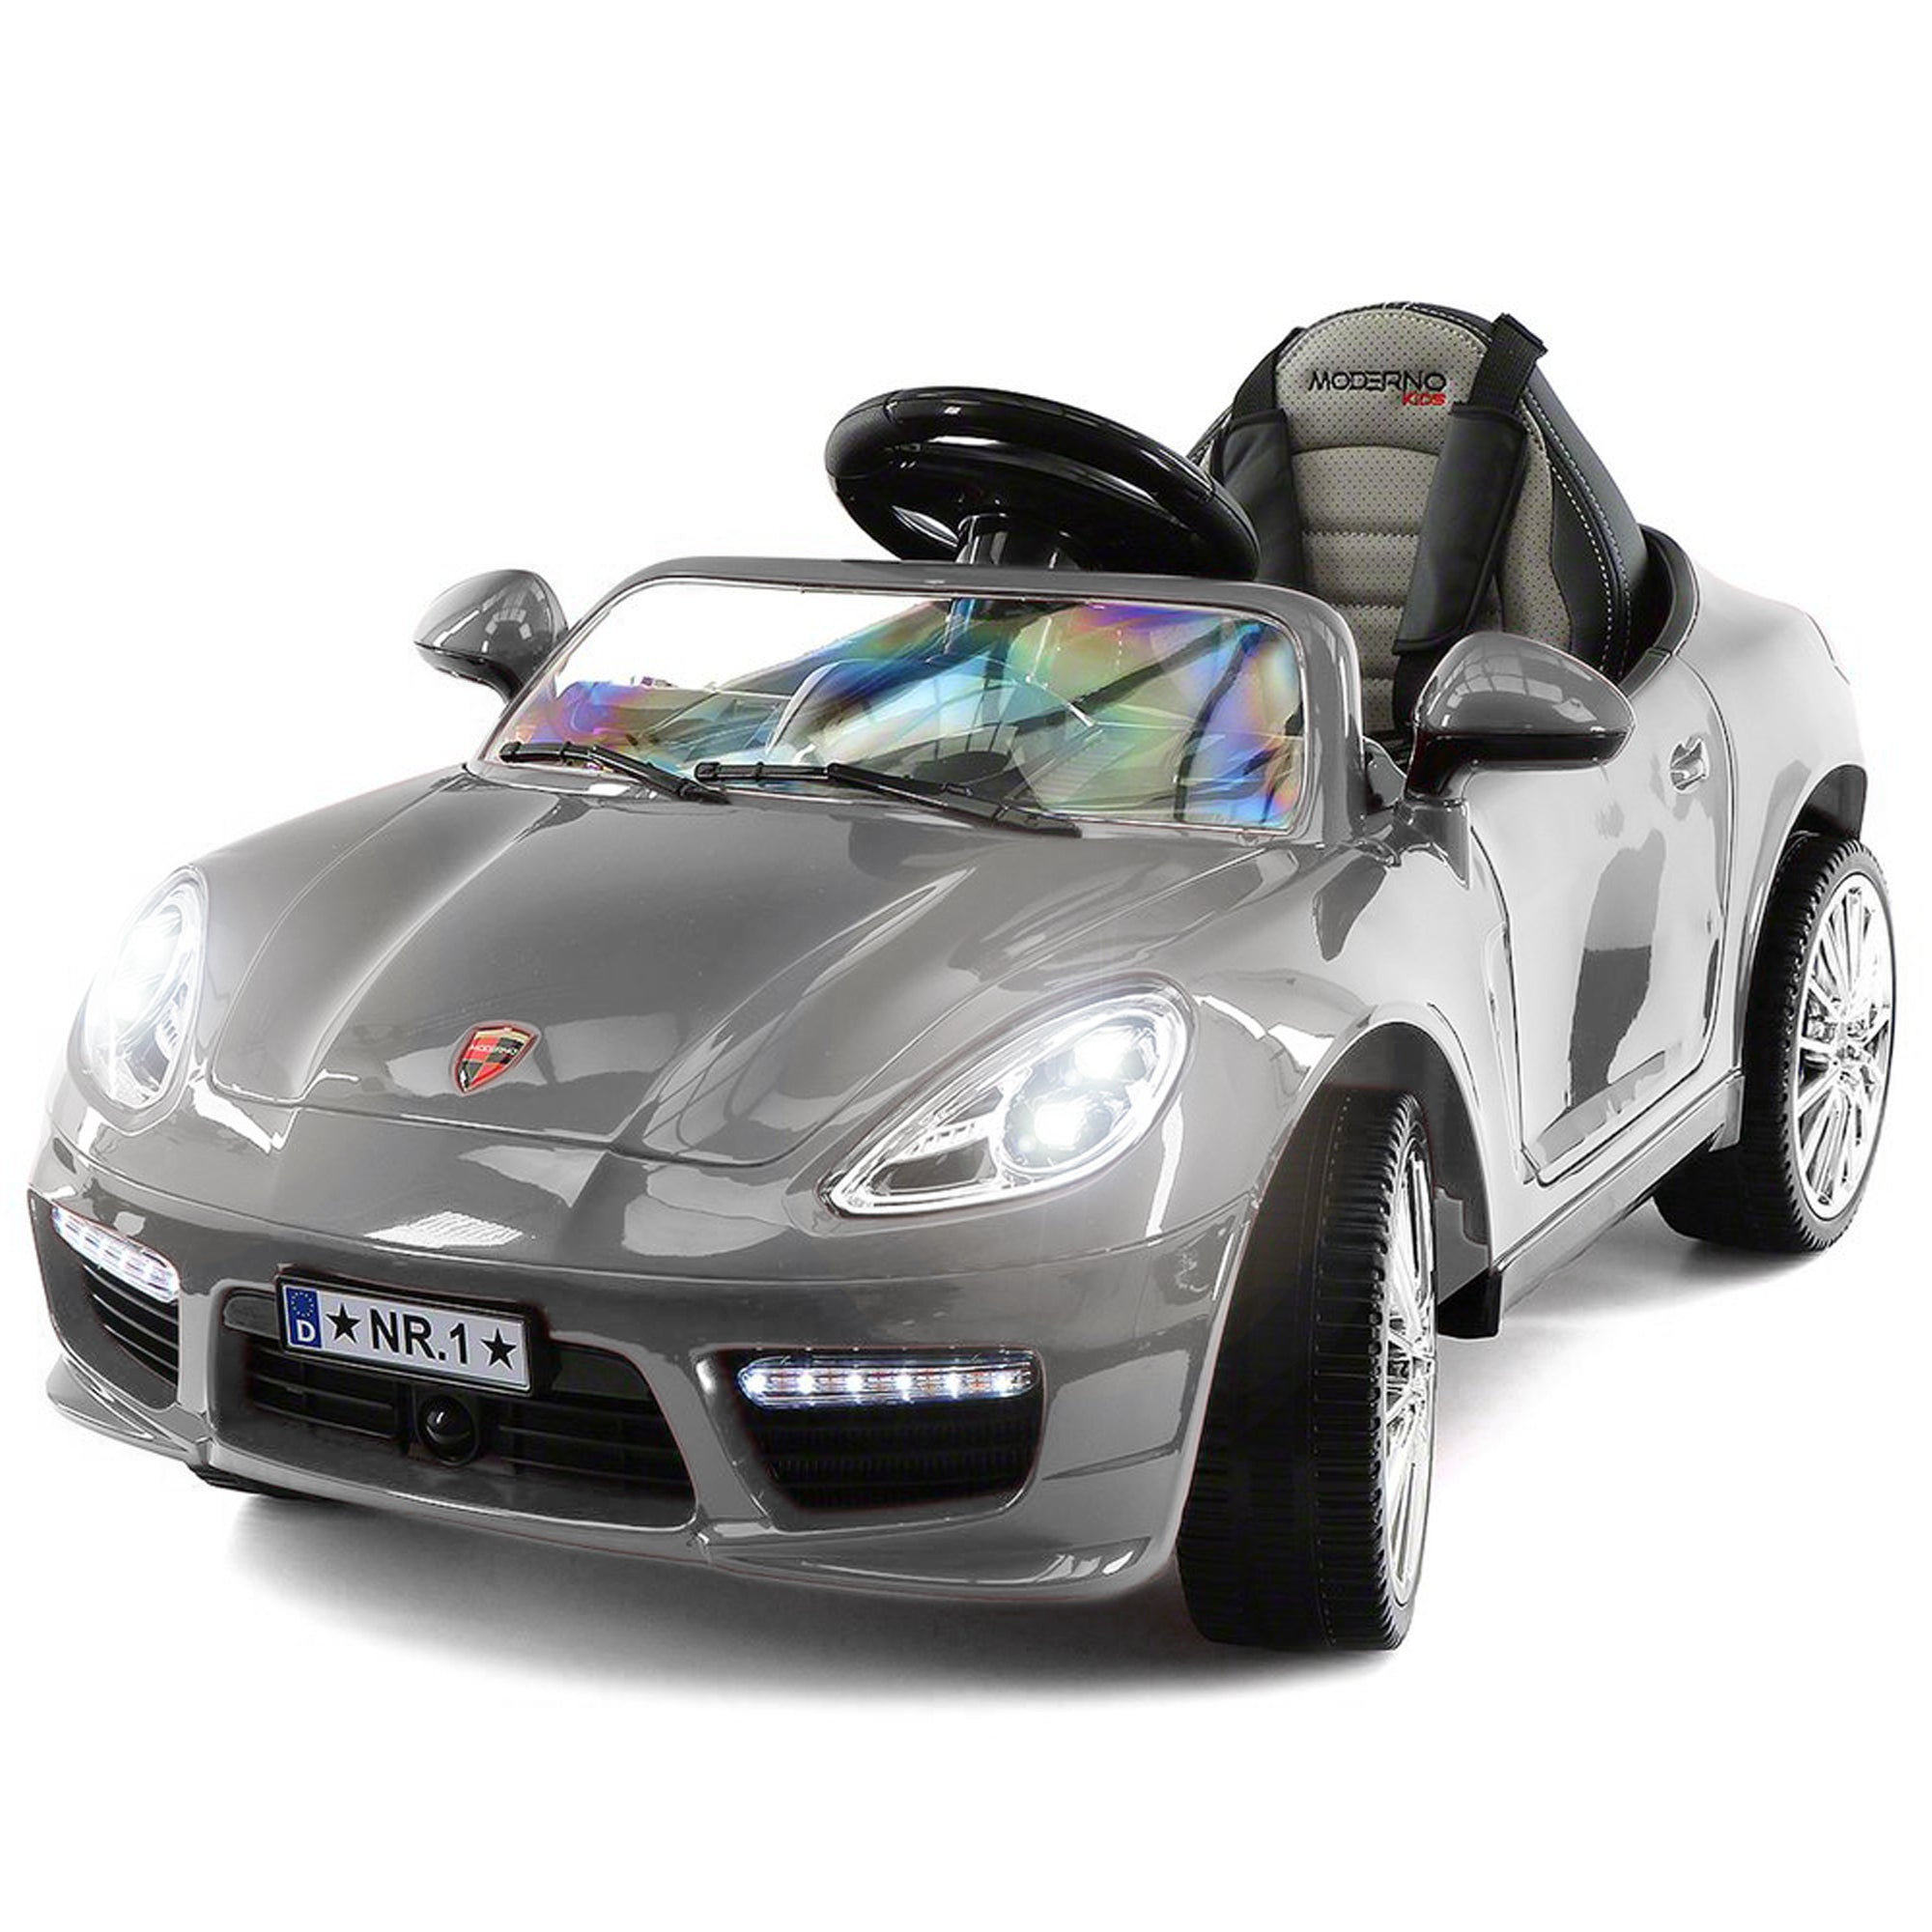 2019 Kids Sports 12V Ride On Car Battery Powered W/ Dining Table, Leather Seat, LED Lights - Silver - Jay Goodys